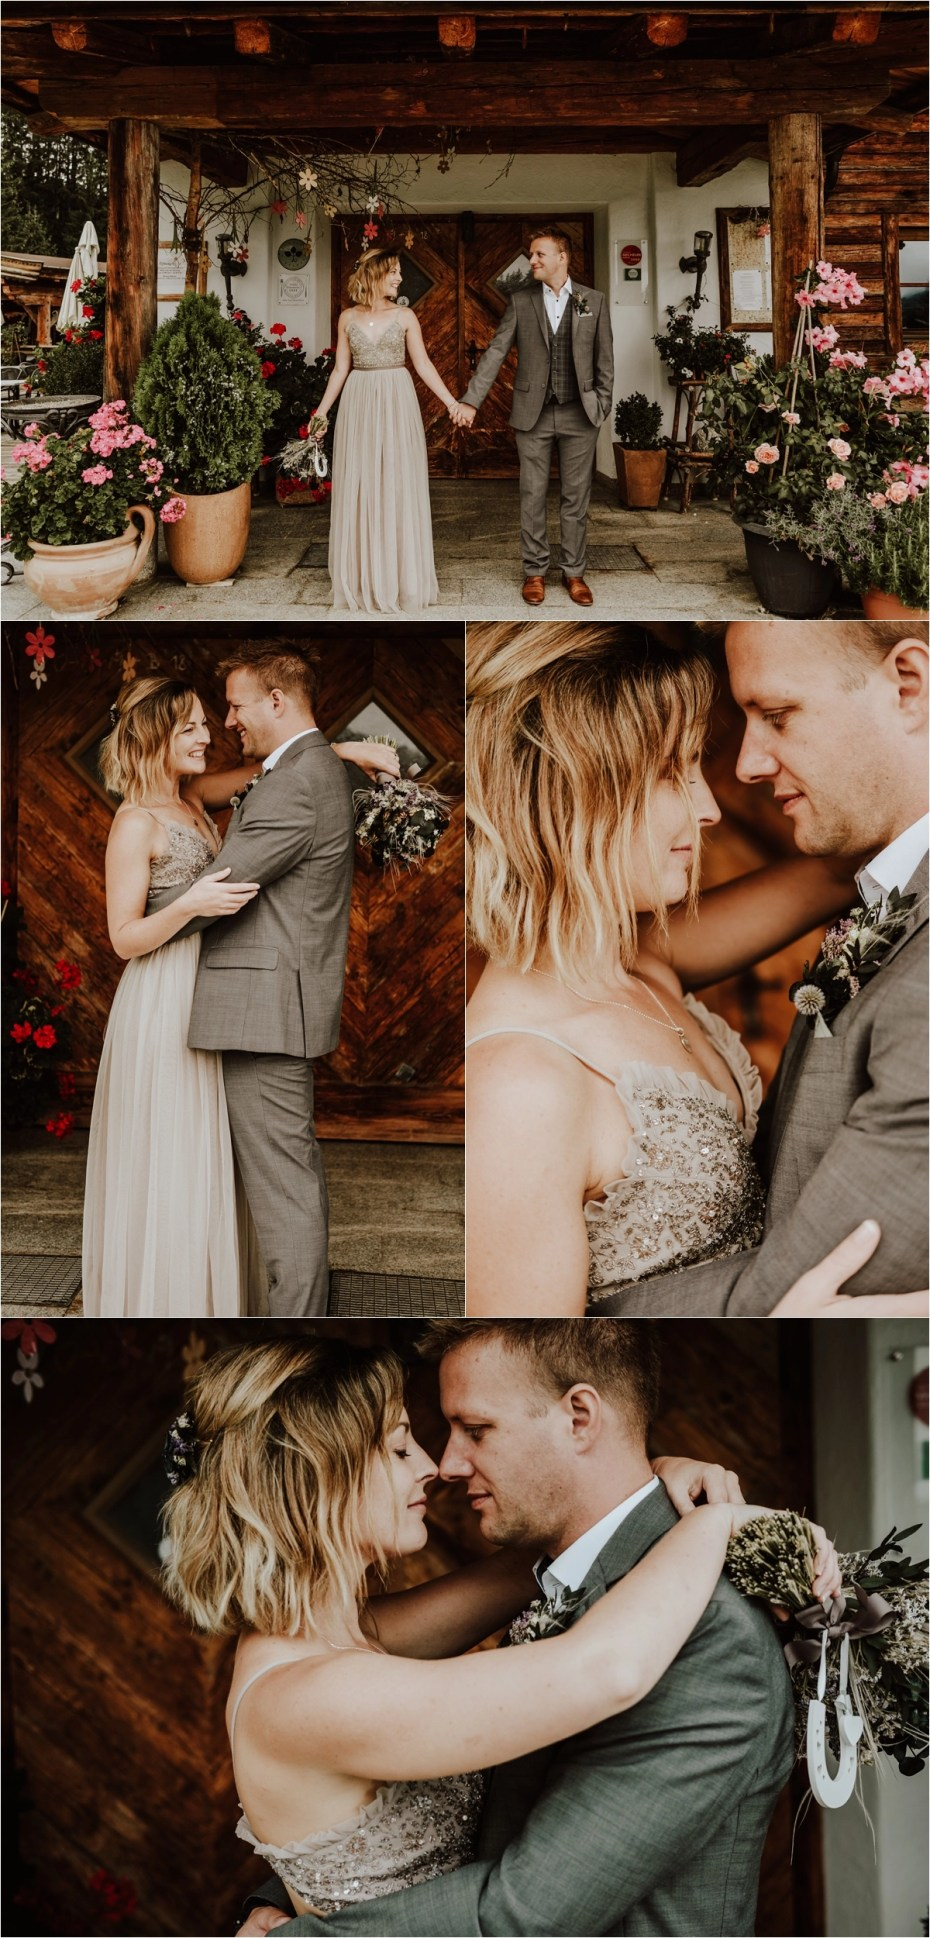 A mountain hut is the best location for this fun Austrian Alps wedding by Wild Connections Photography